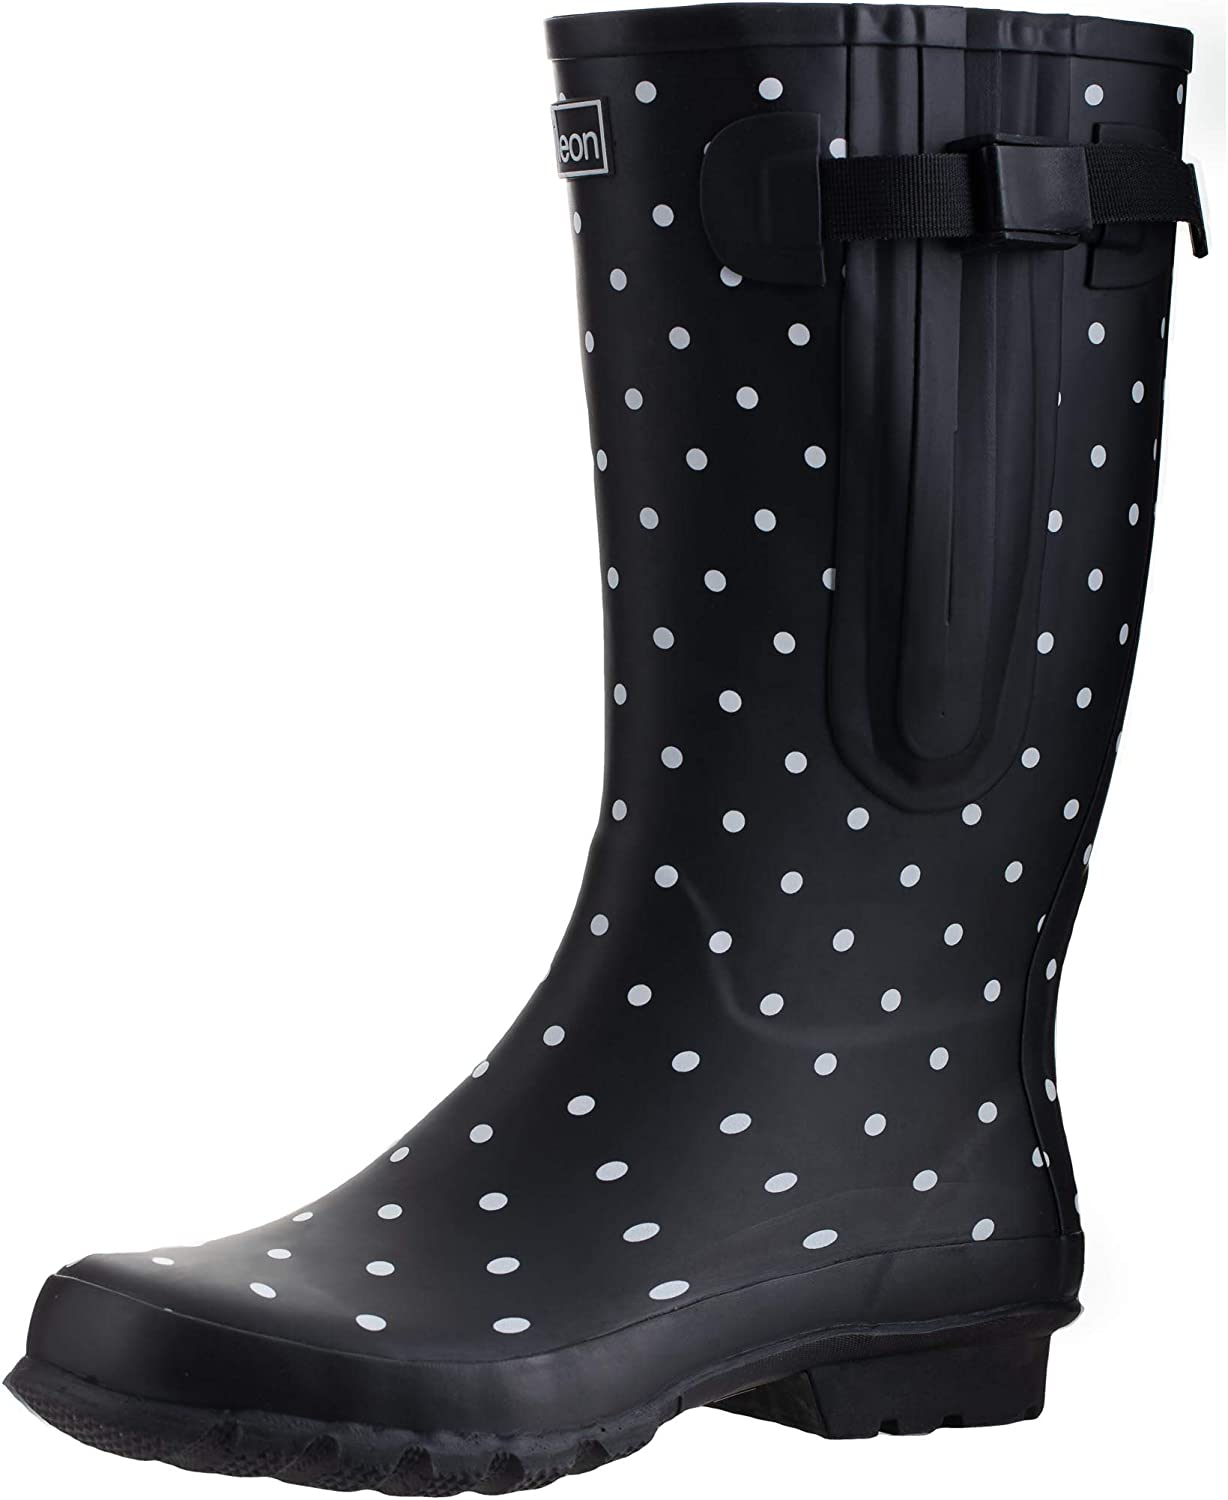 footwear new design better Amazon.com | Jileon Wide Calf Durable Rubber Rain Boots for Women ...